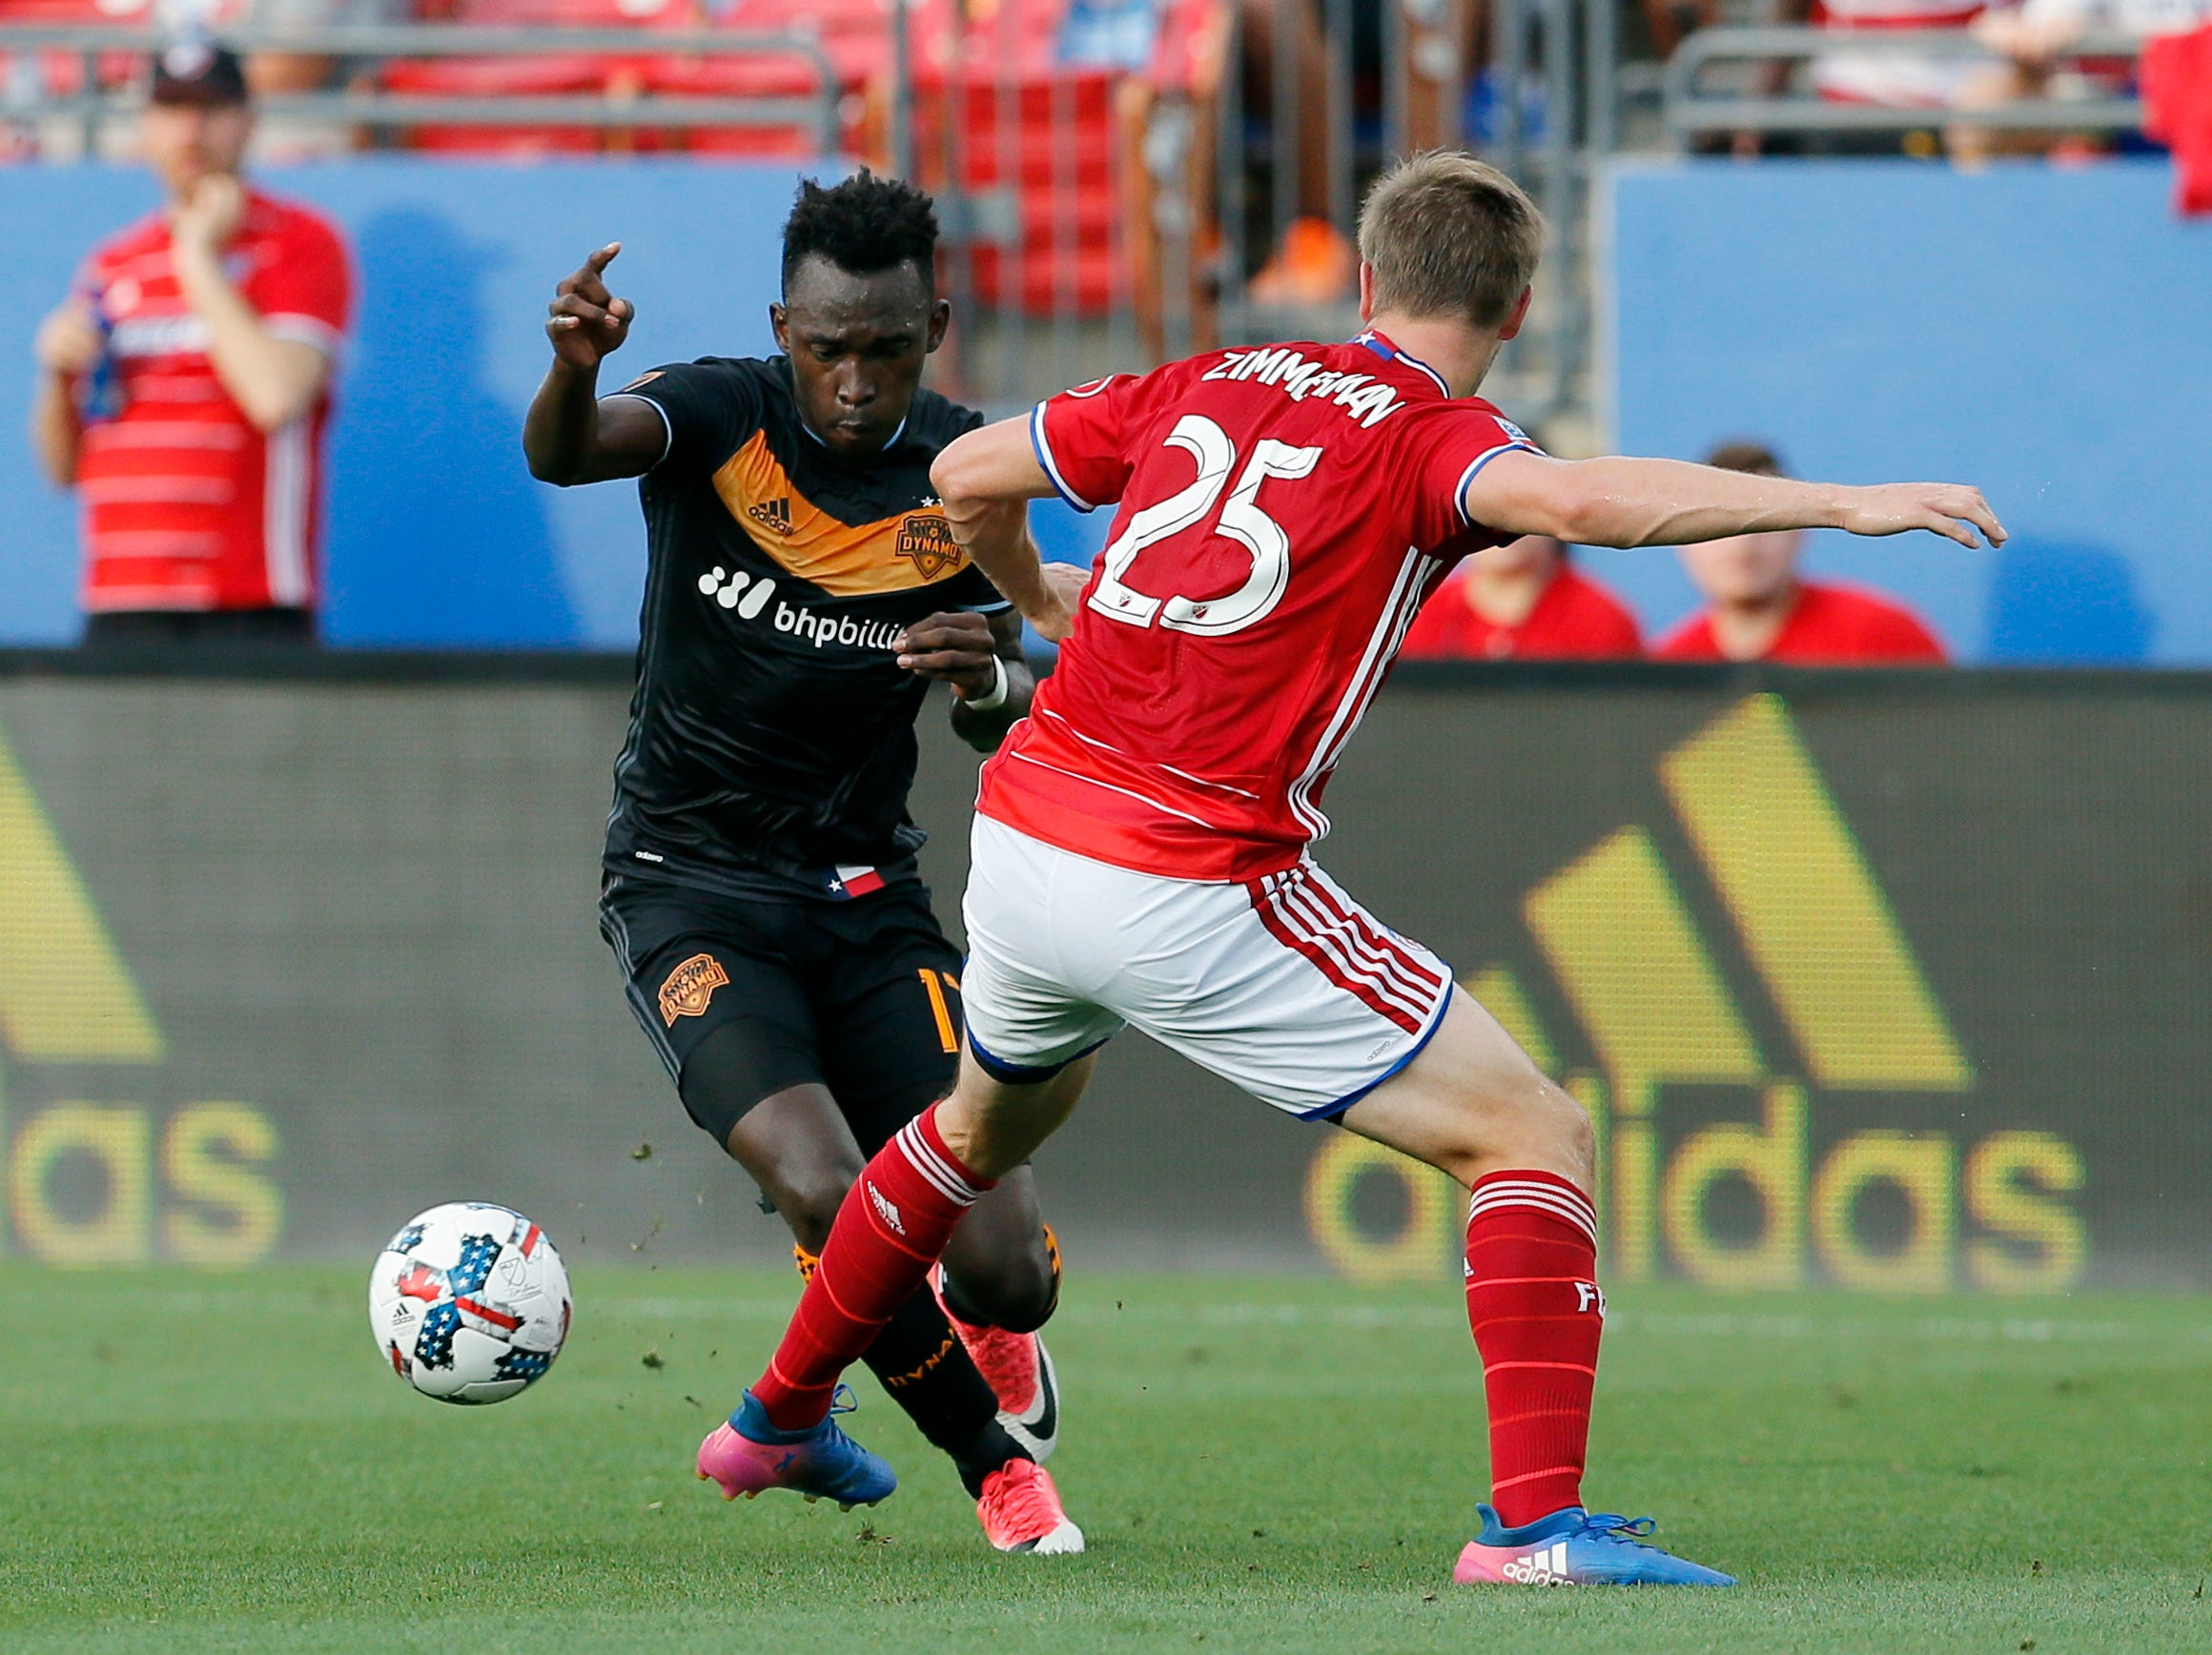 Knee injury clouds Gold Cup outlook for FC Dallas' Zimmerman